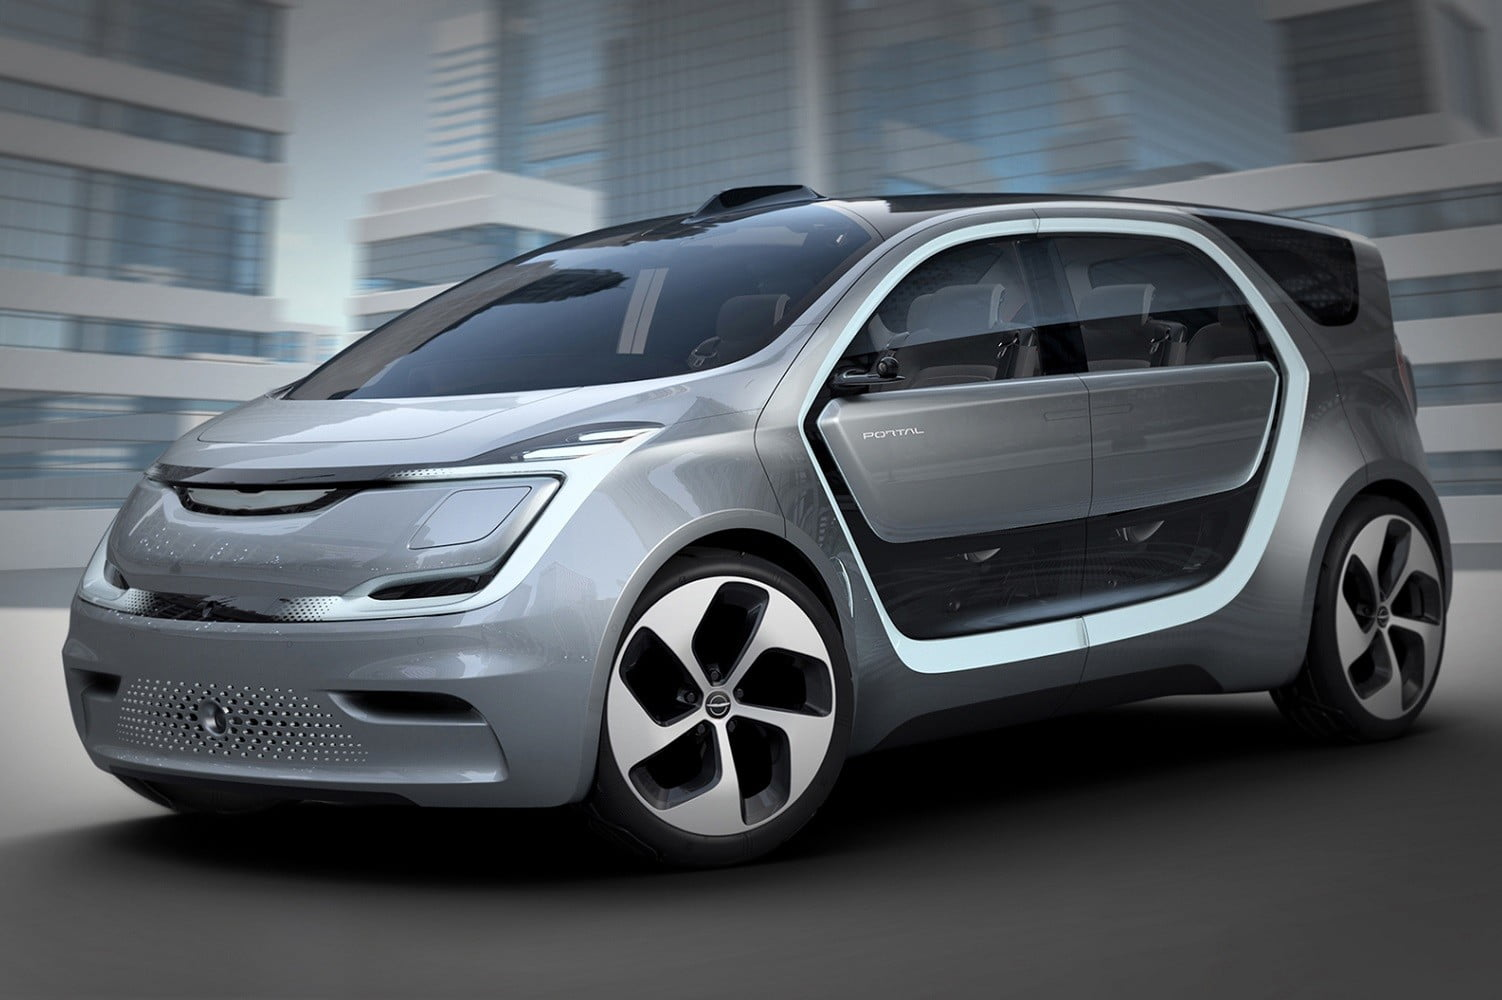 chrysler may survive as mobility brand with shared vehicles